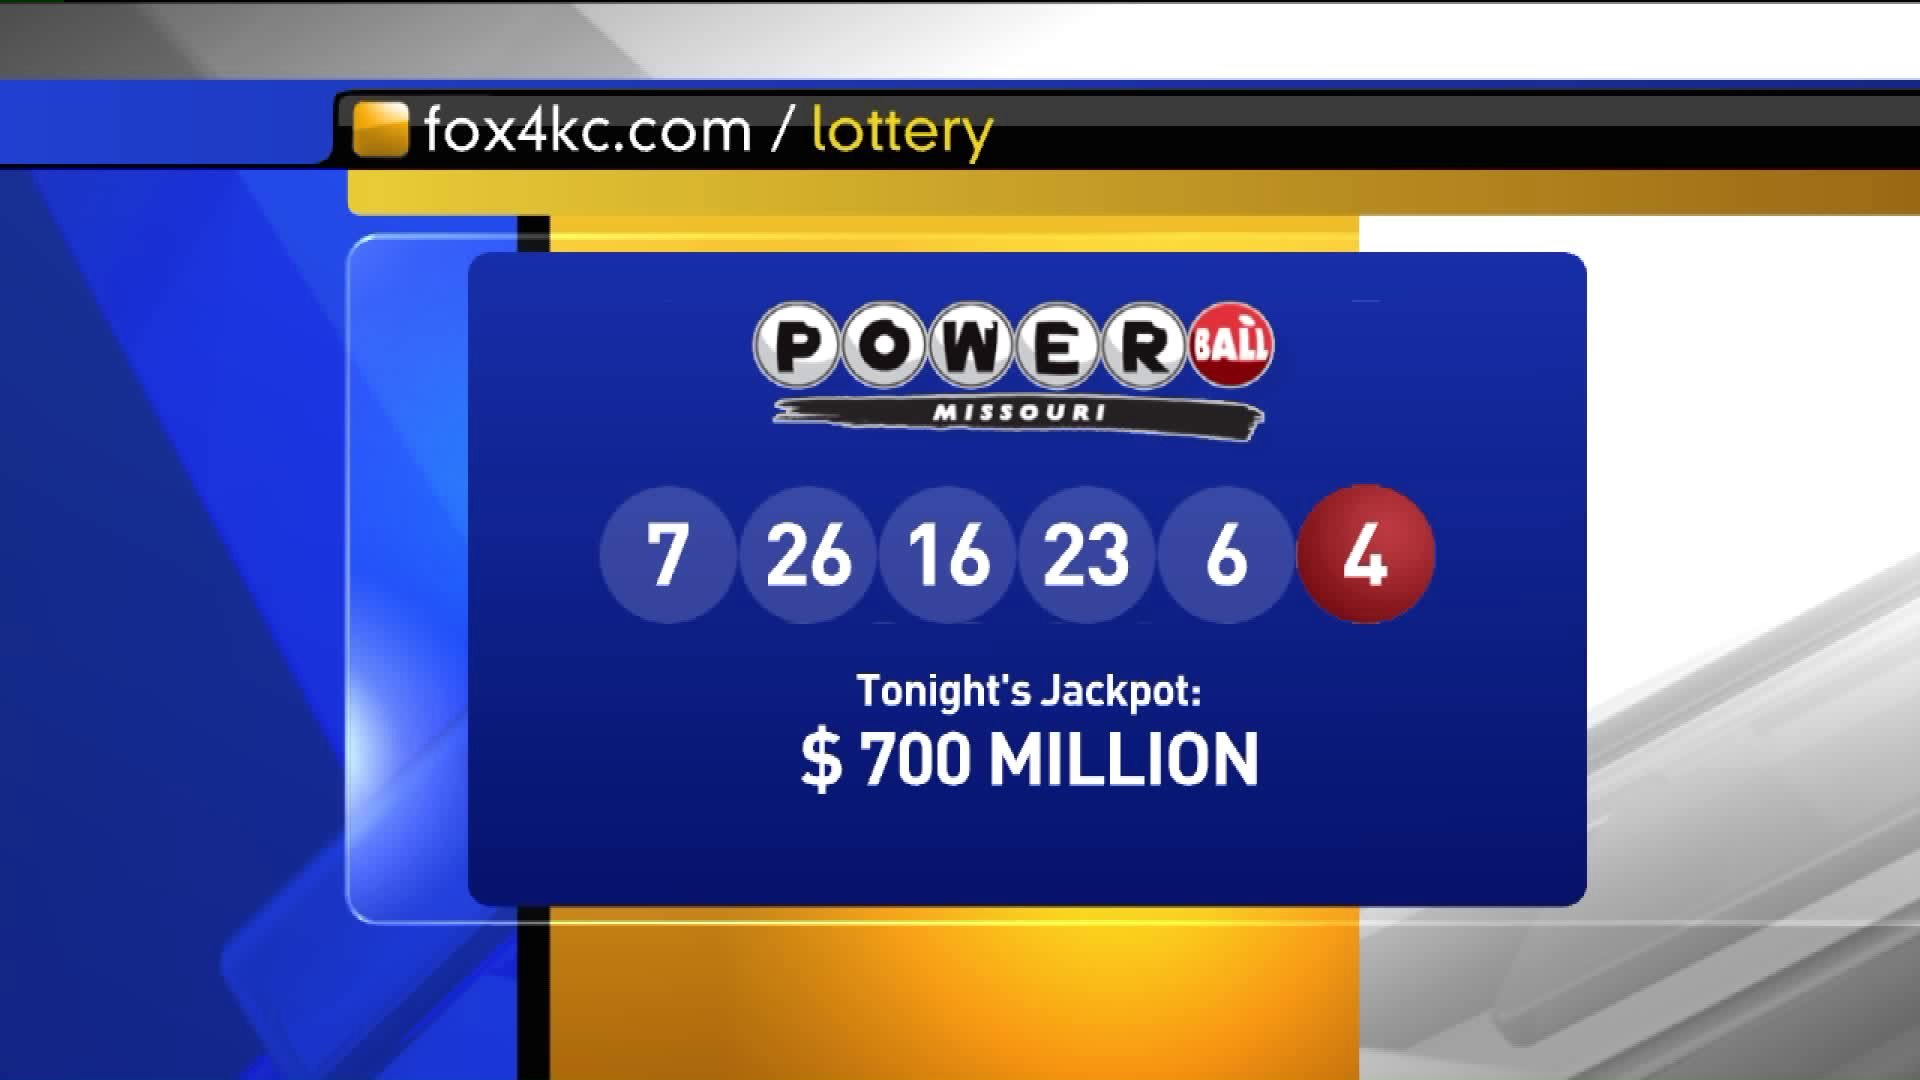 powerball schedule photo - 1